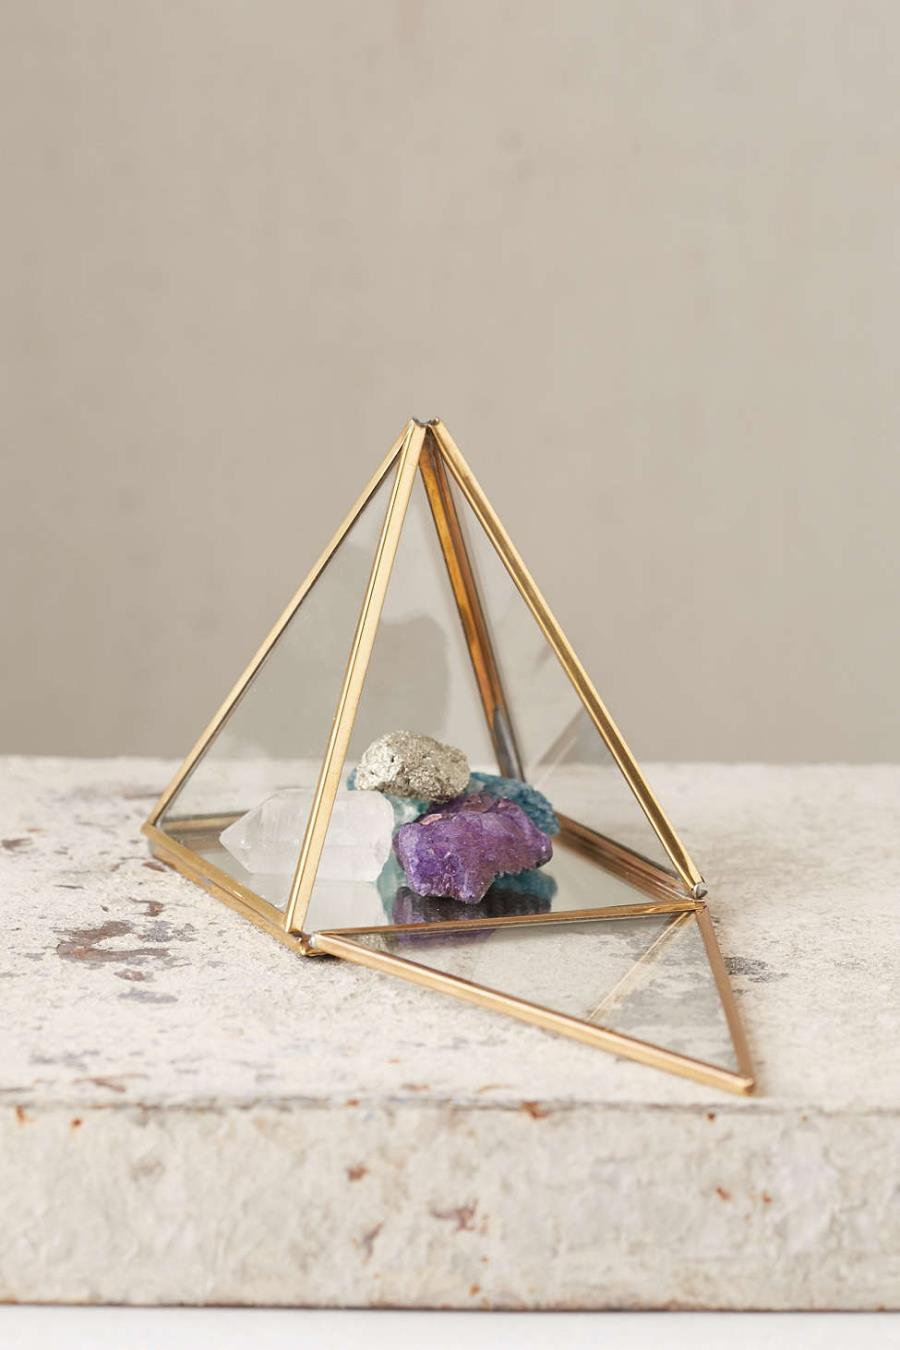 Metal pyramid box from Urban Outfitters